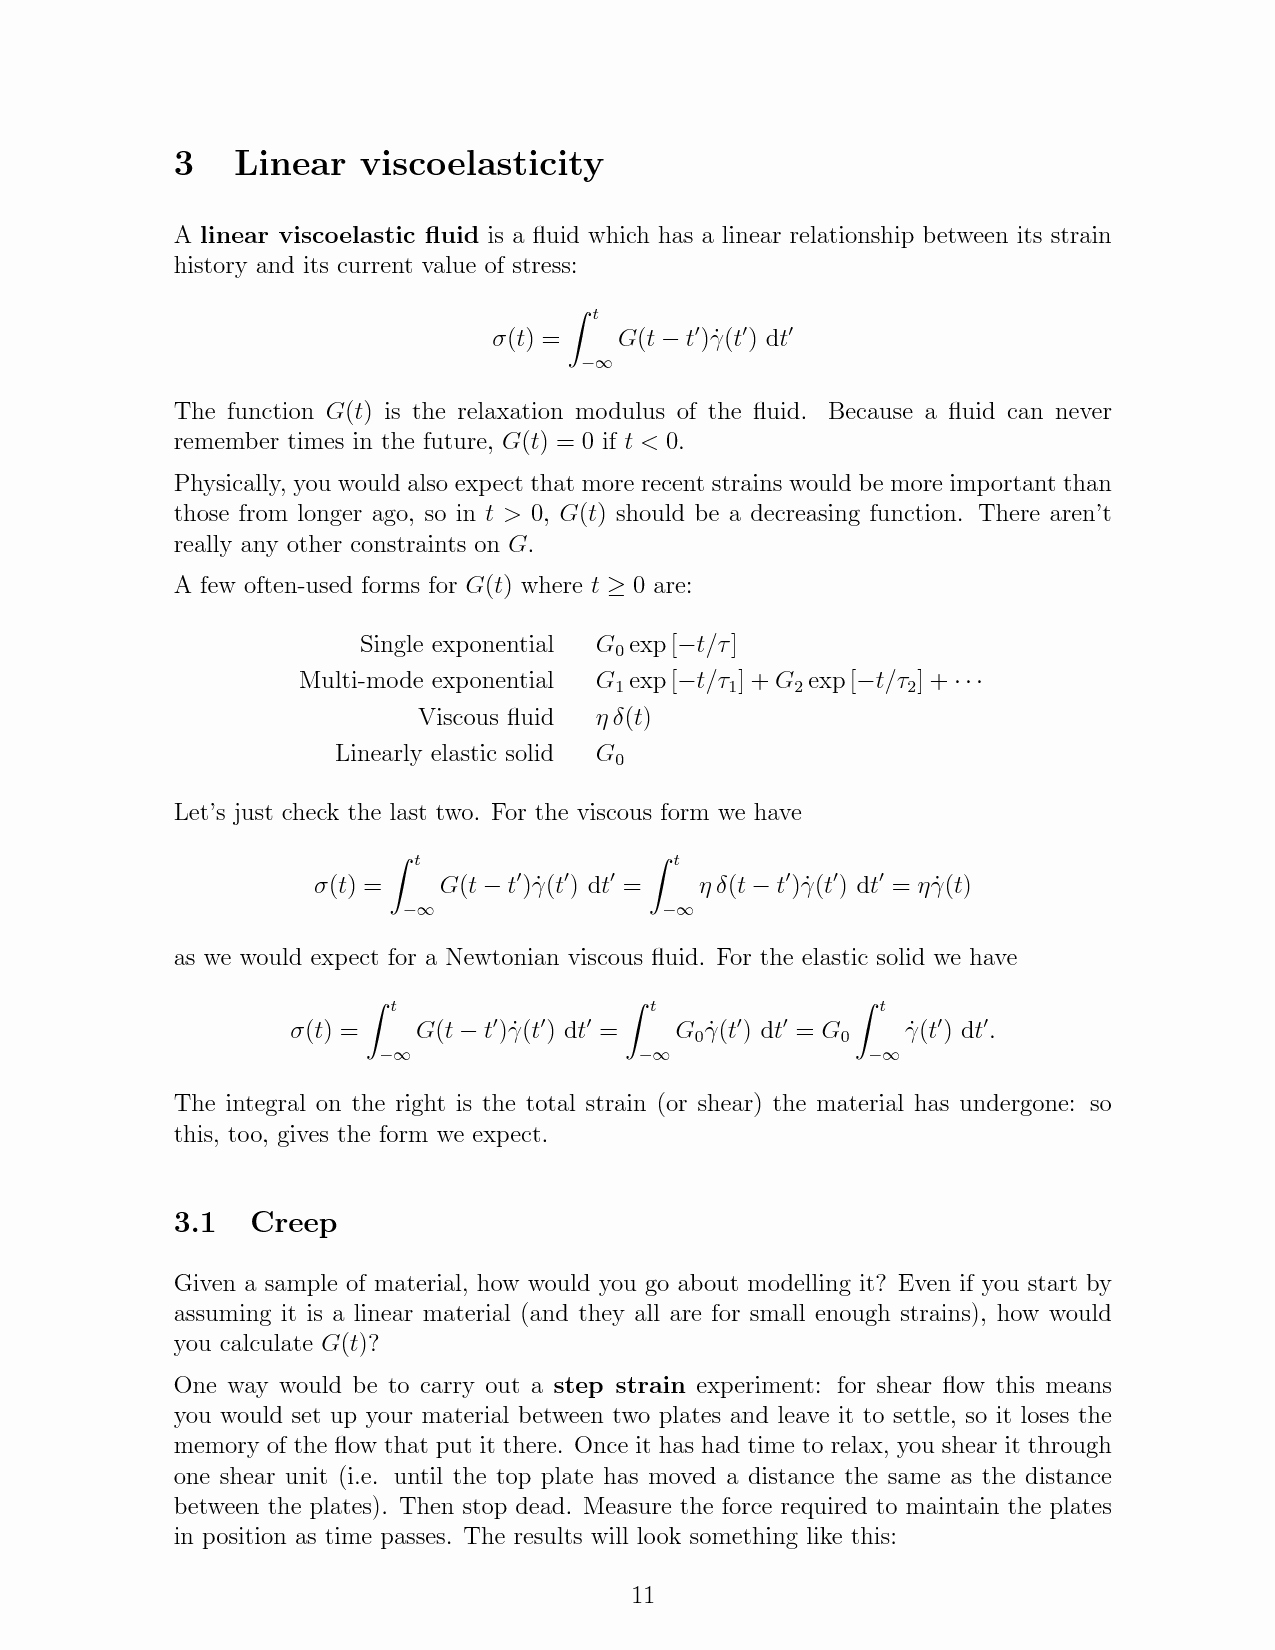 Linear Functions Word Problems Worksheet Unique 17 Best Of Linear Function Word Problems Worksheet